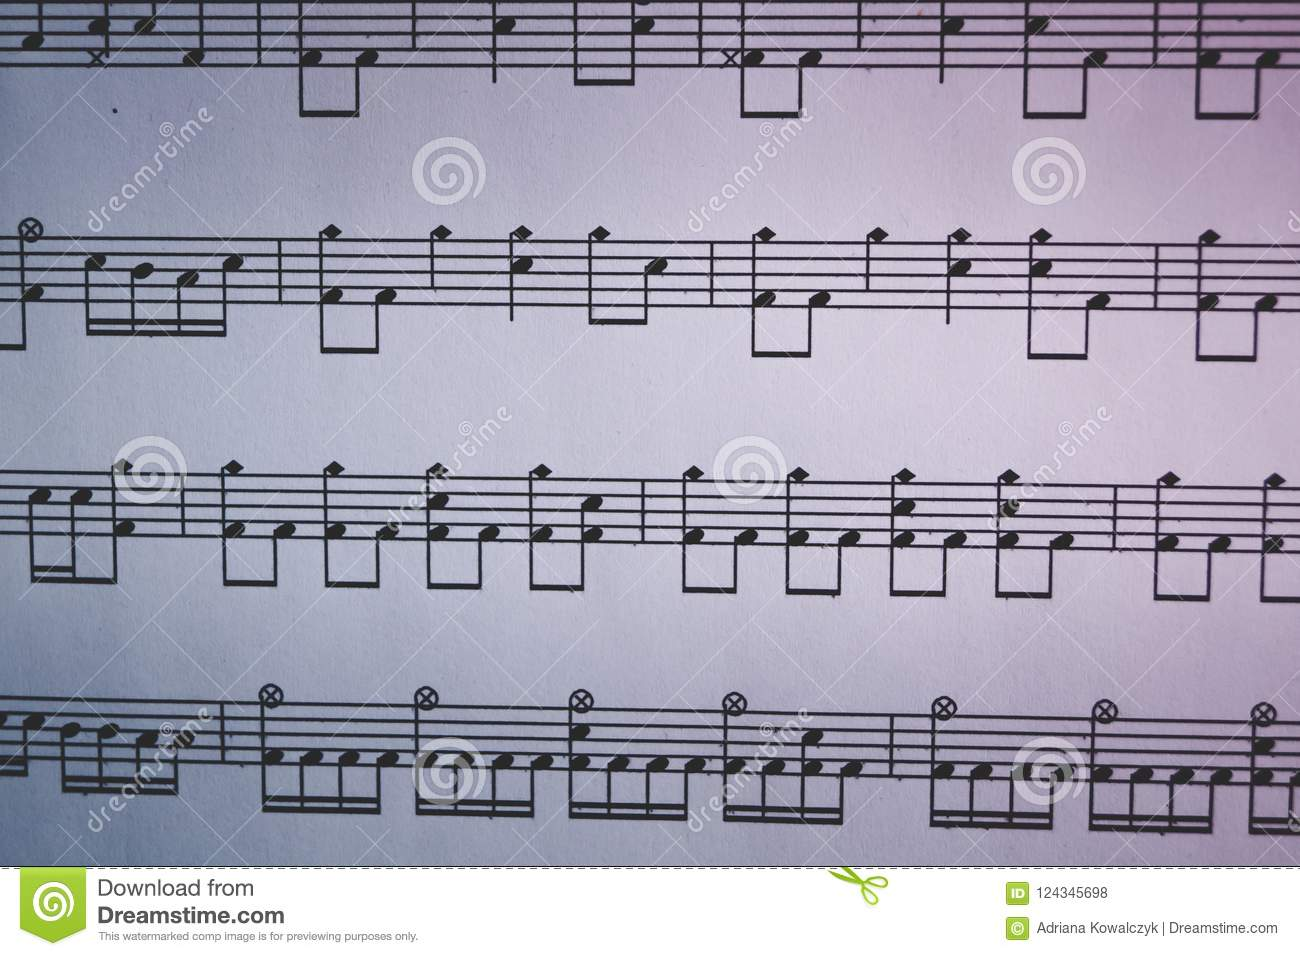 Drums Sheet Music Notes Close Up Stock Photo - Image of